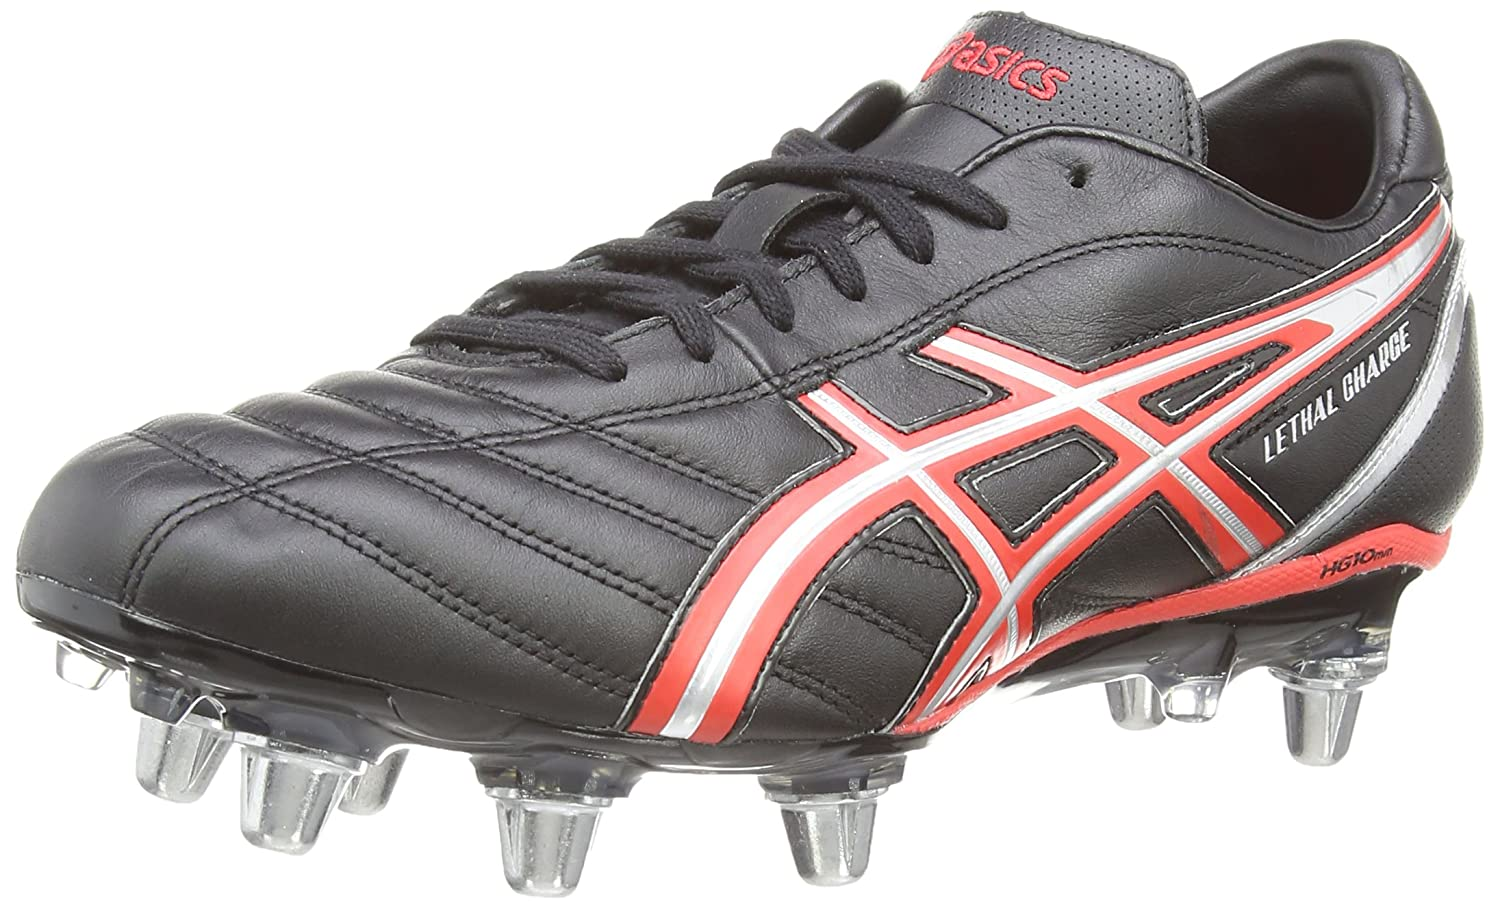 ASICS Lethal Charge, Men's Rugby Boots Men' s Rugby Boots Onistuka Tiger P029L-9023